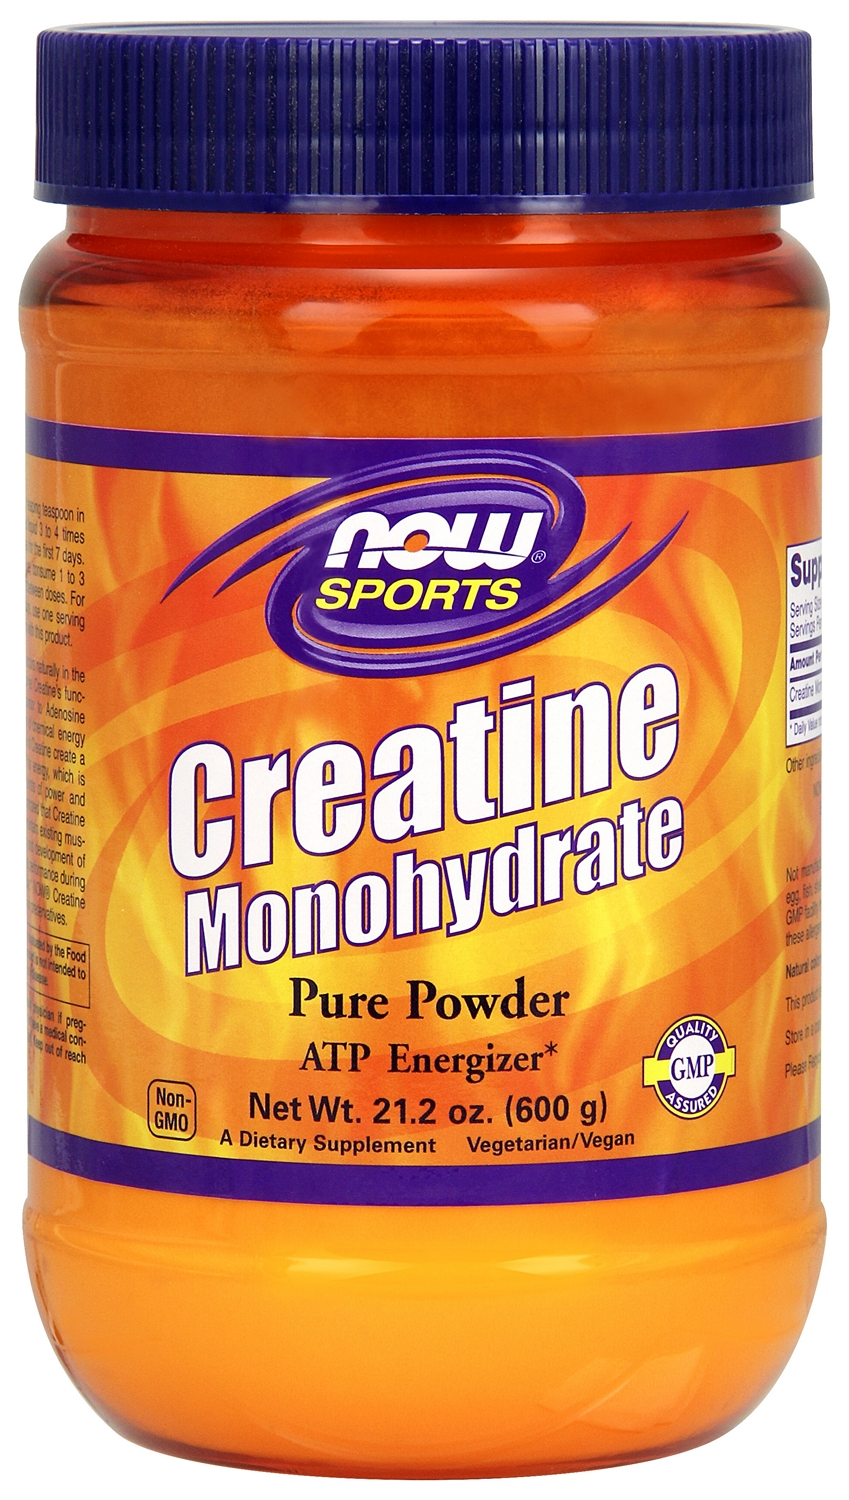 Creatine Monohydrate 21.2 oz (600 g) by NOW